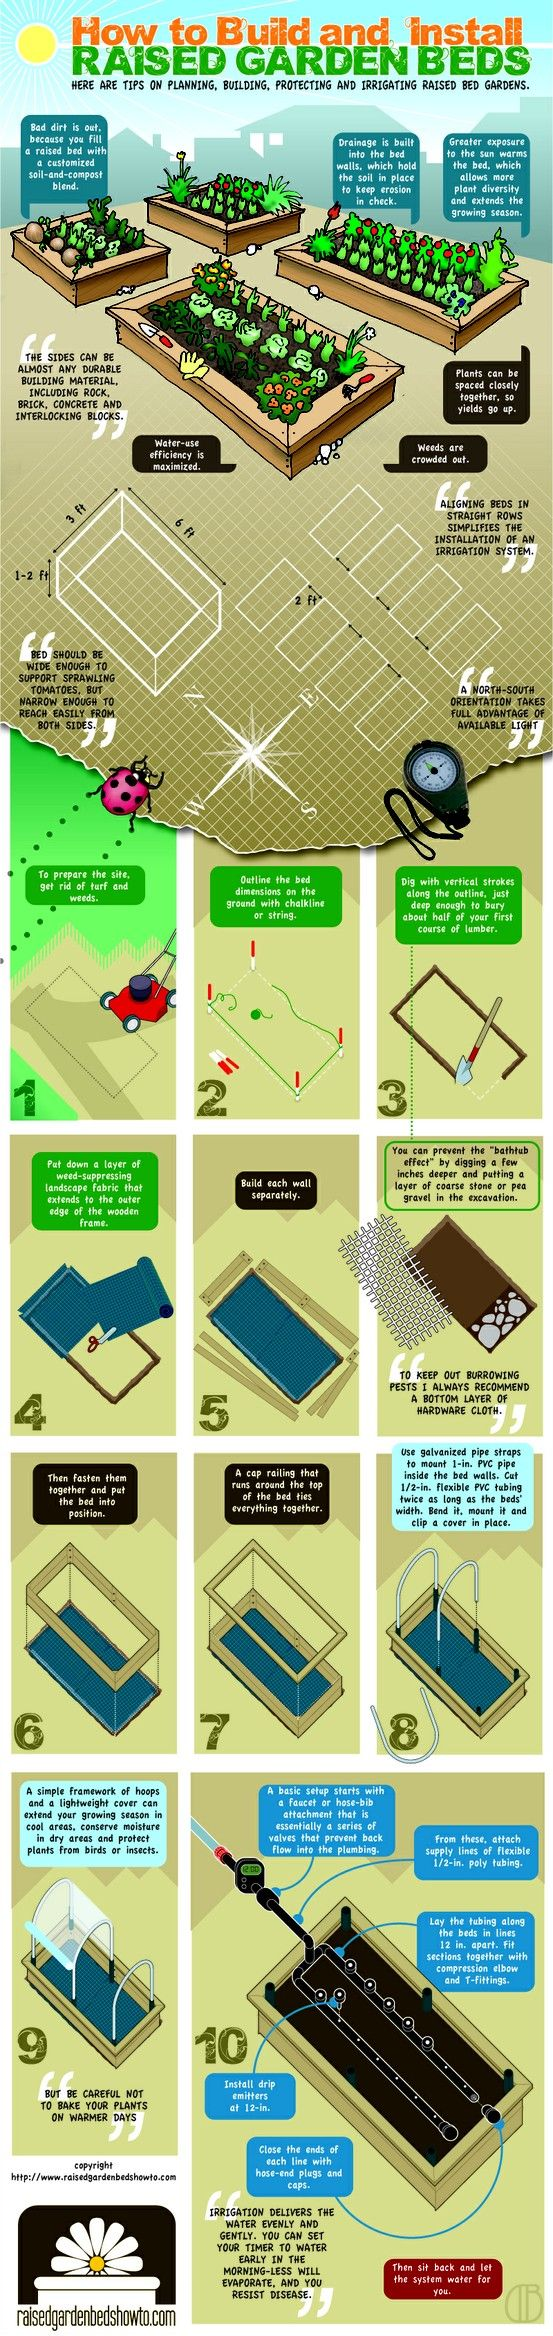 how-to-build-raised-garden.jpg 553×2,336 pixels